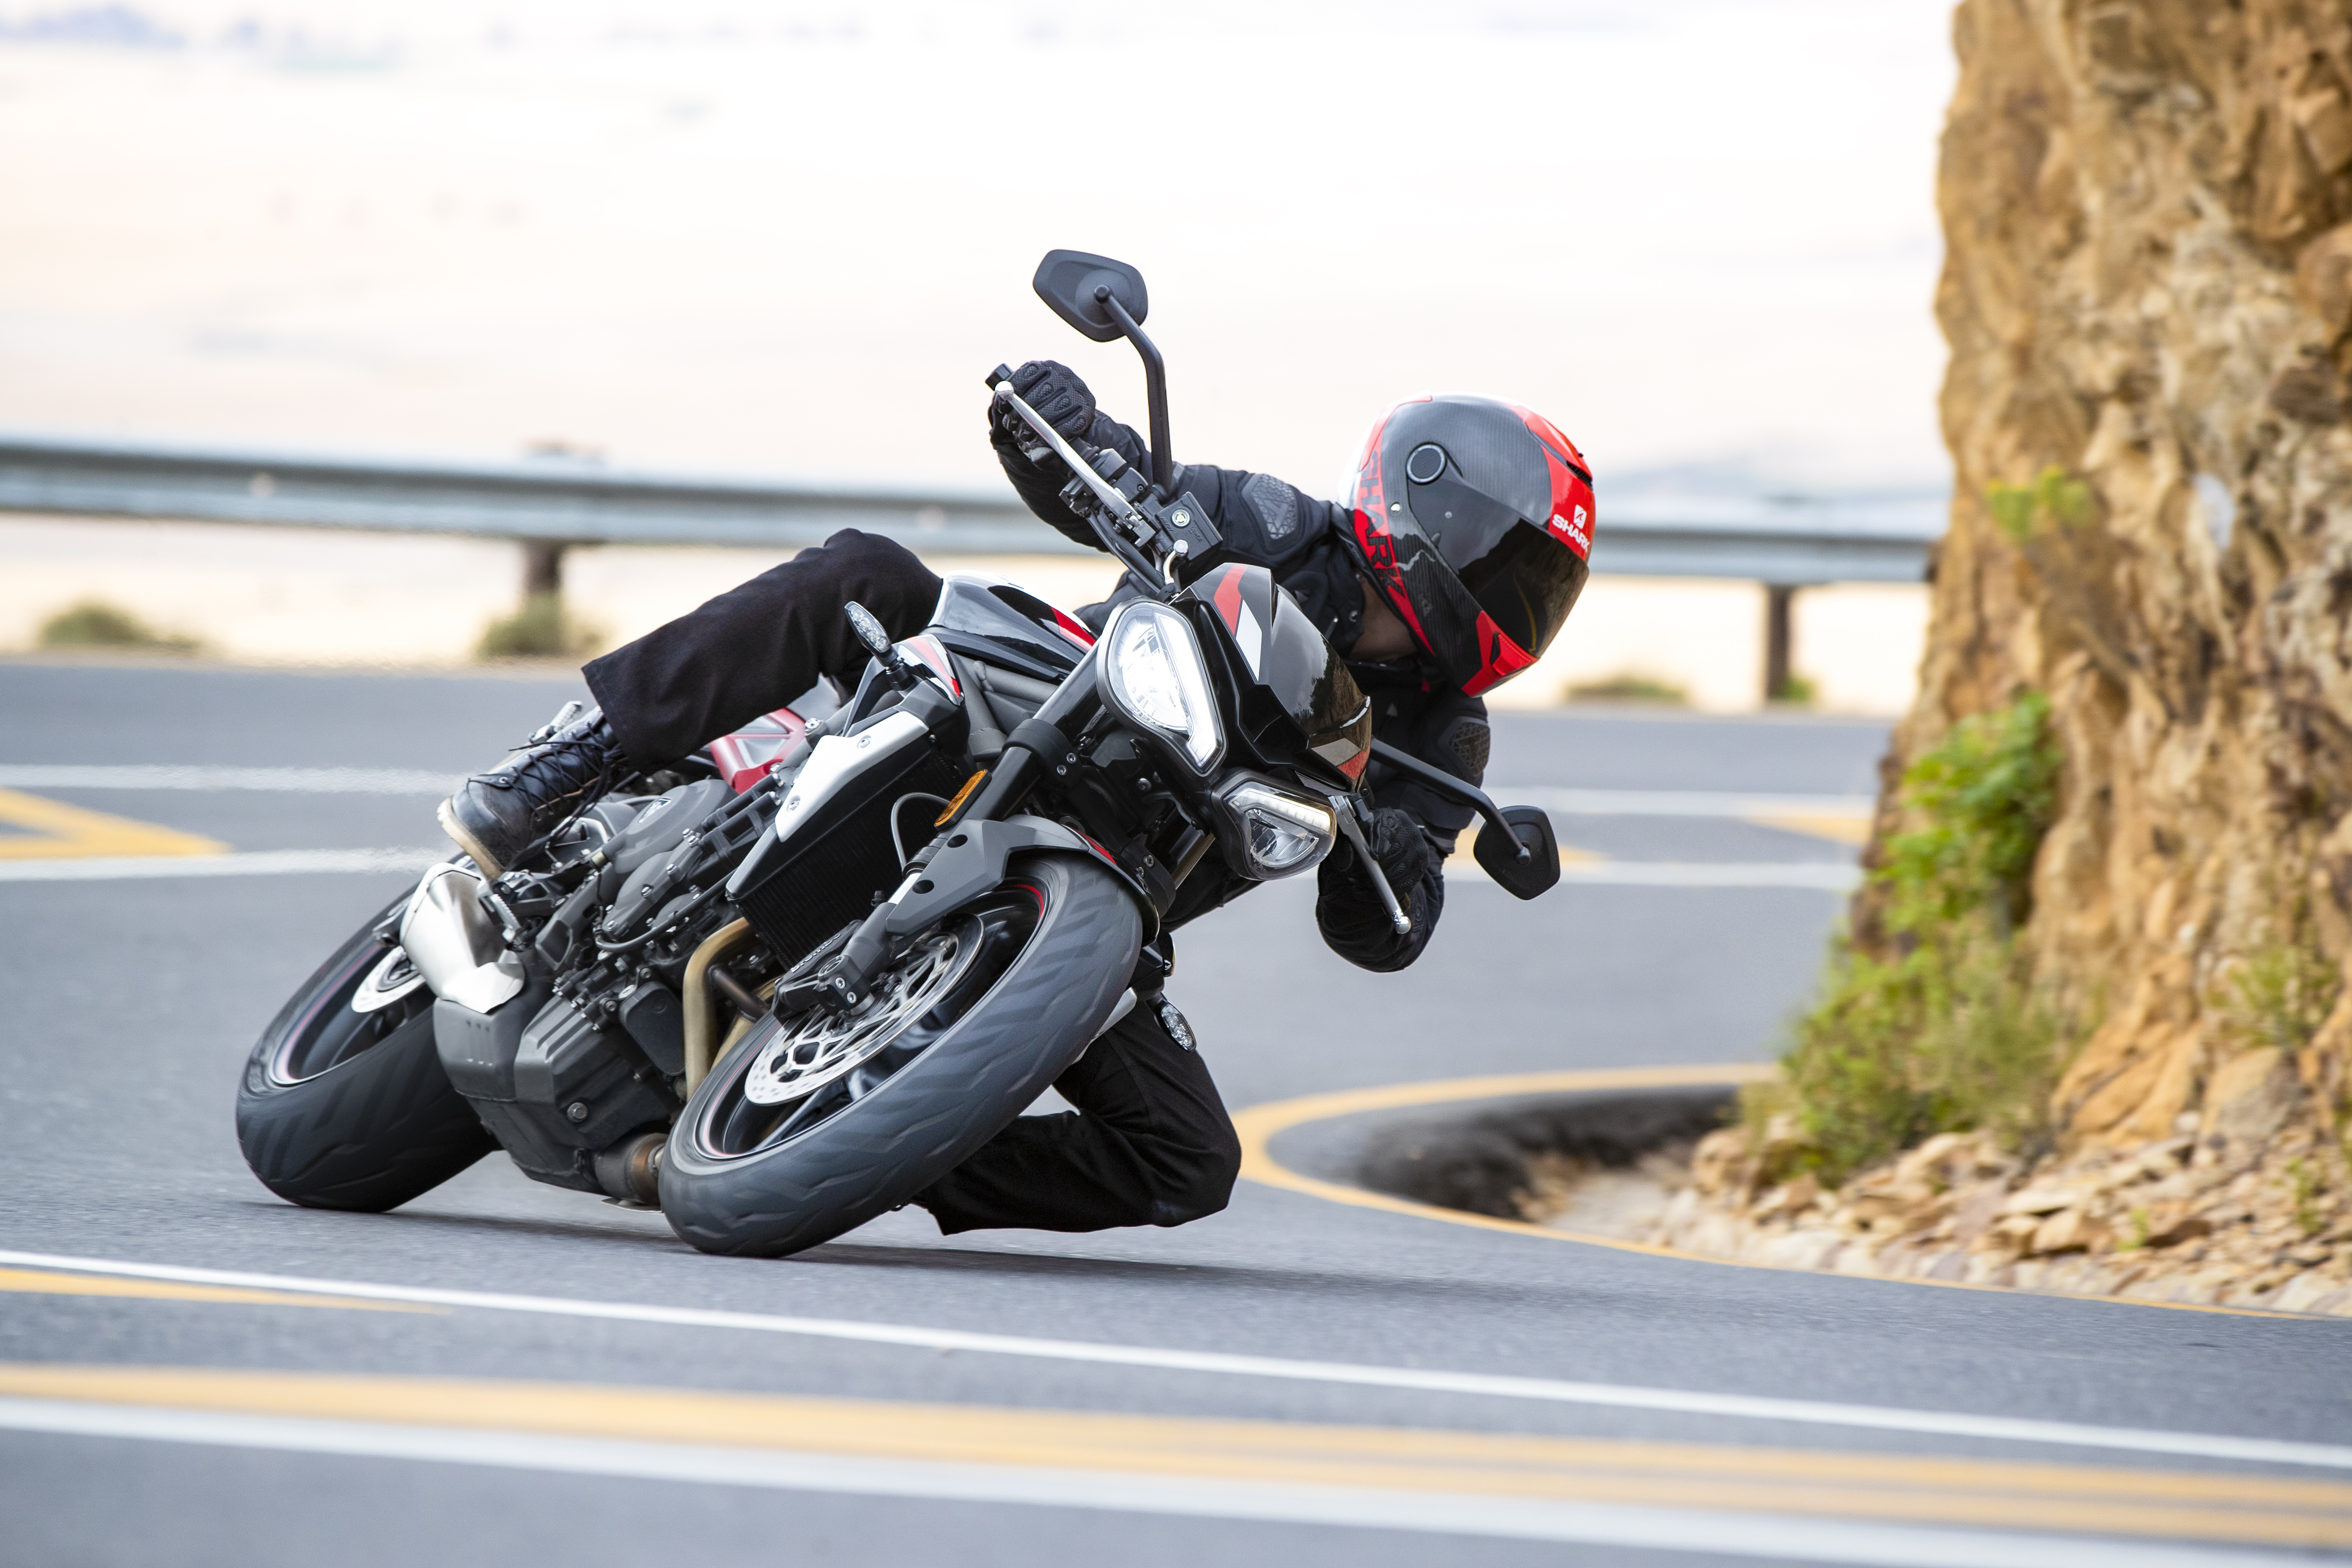 New 2020 Triumph Street Triple R Officially Launched